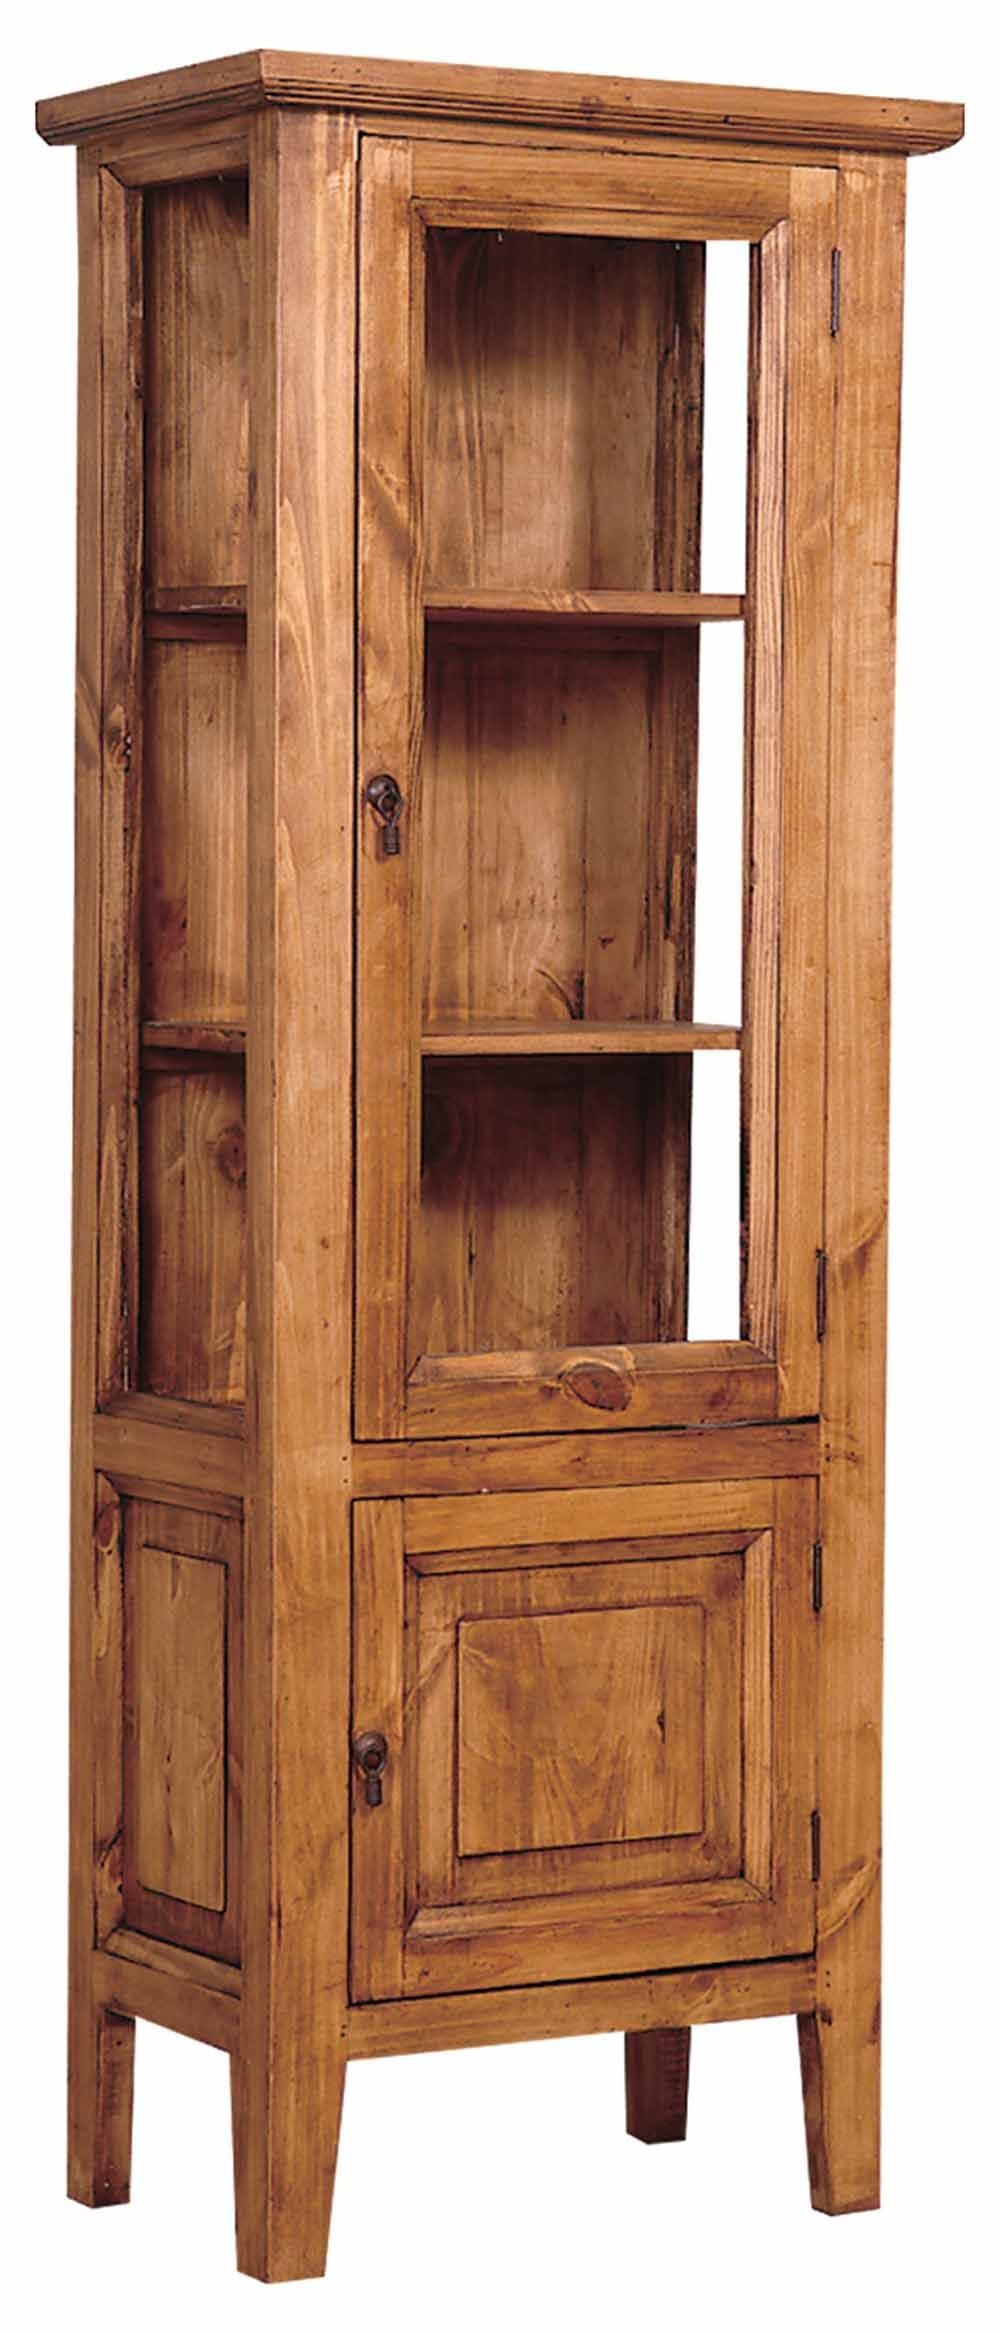 Rustic Pine Curio Cabinet #rusticpinefurniture & Rustic Pine Curio Cabinet #rusticpinefurniture   Furniture By Style ...